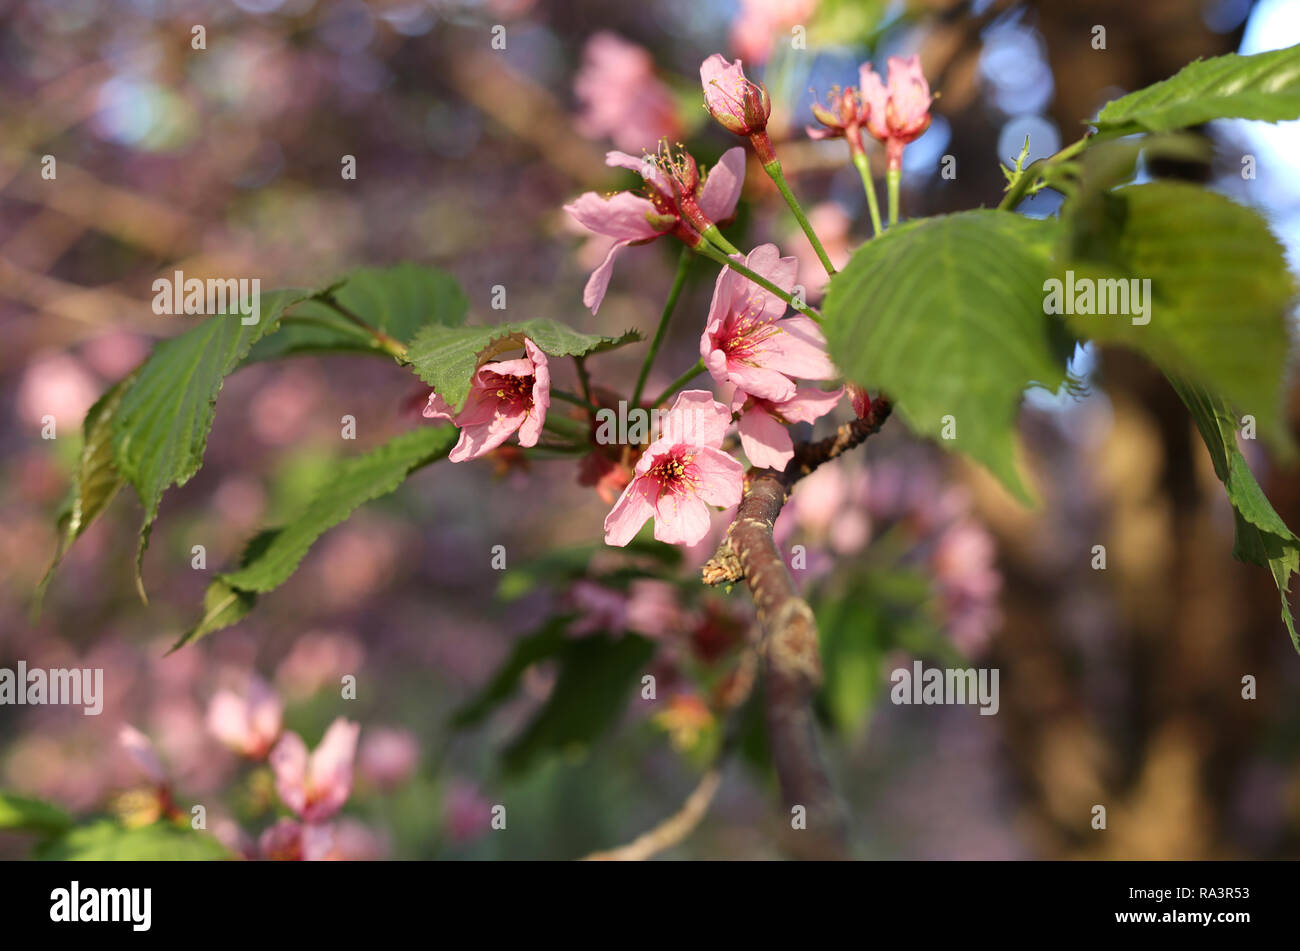 Beautiful Japanese cherry blossoms. These pink beauties are still attached to a cherry tree branch. In this close up photo the flowers are blooming. Stock Photo